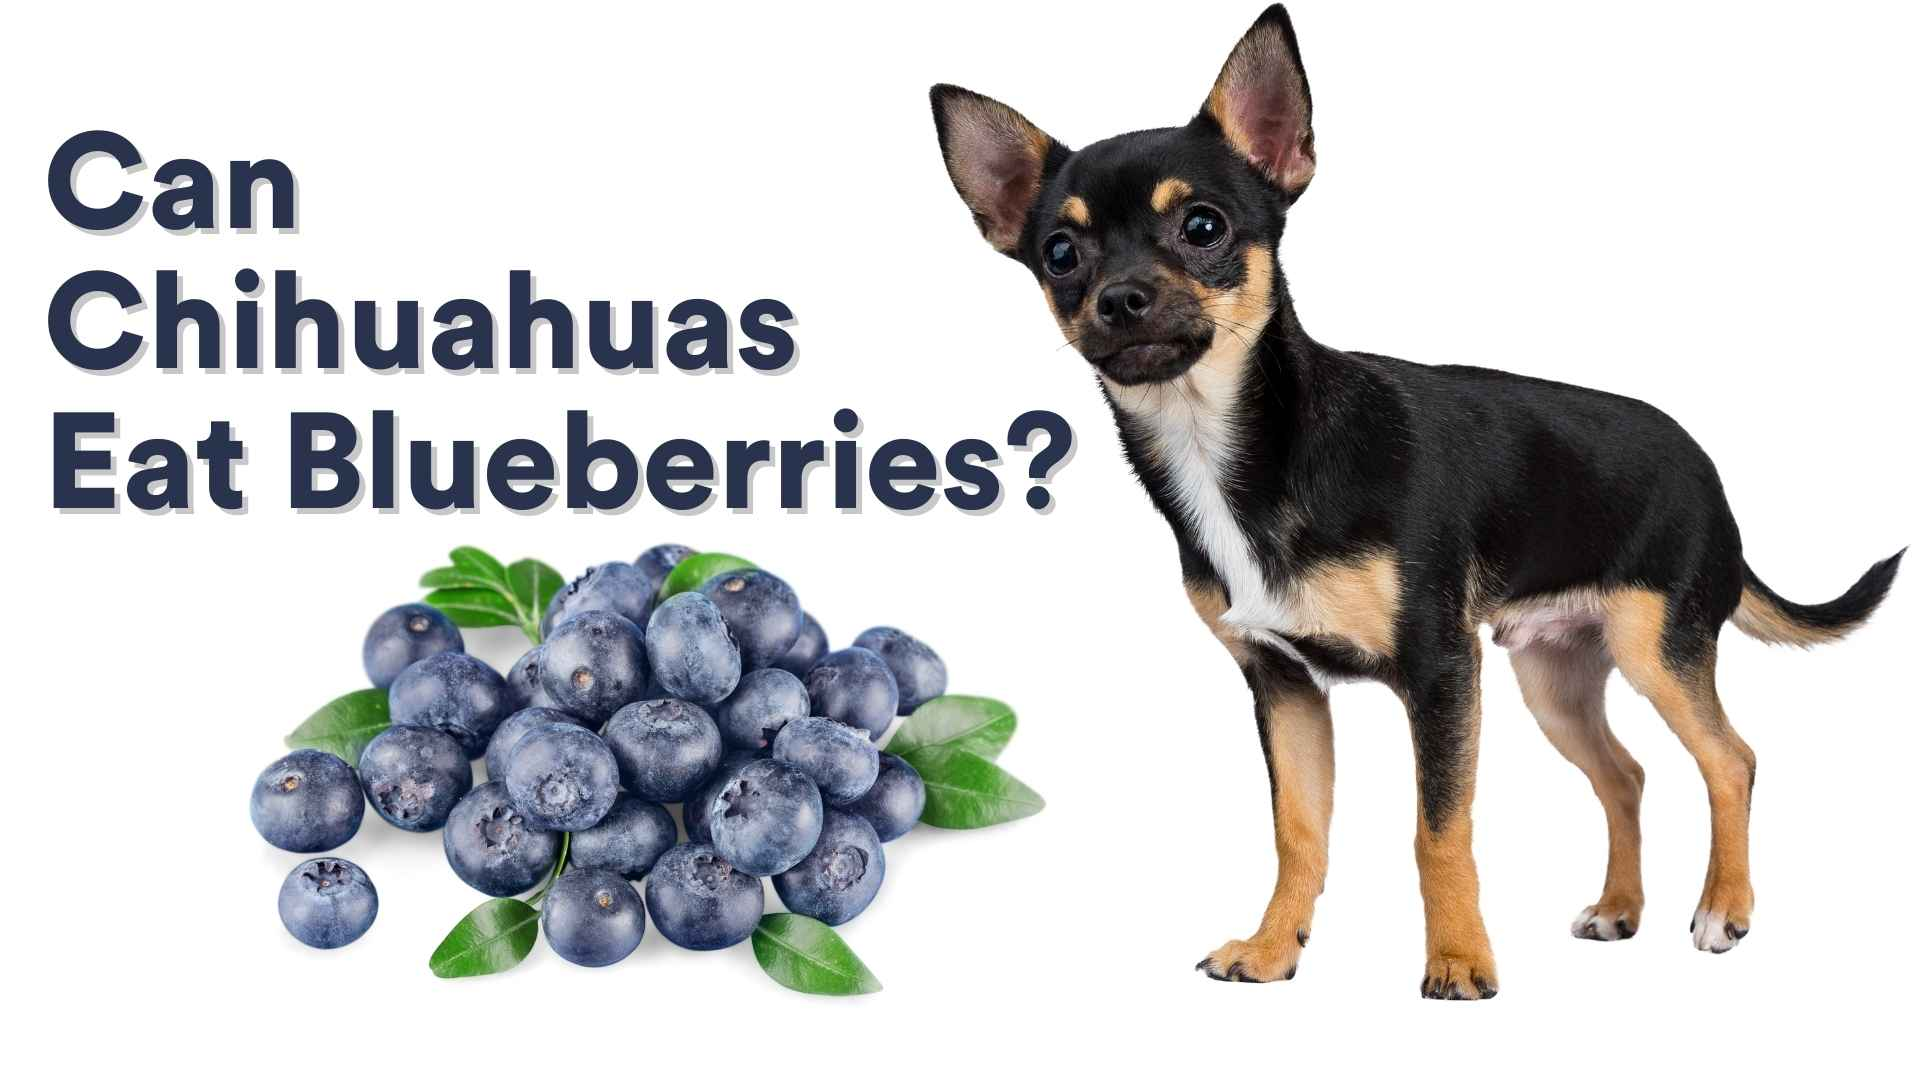 Can Chihuahuas Eat Blueberries?